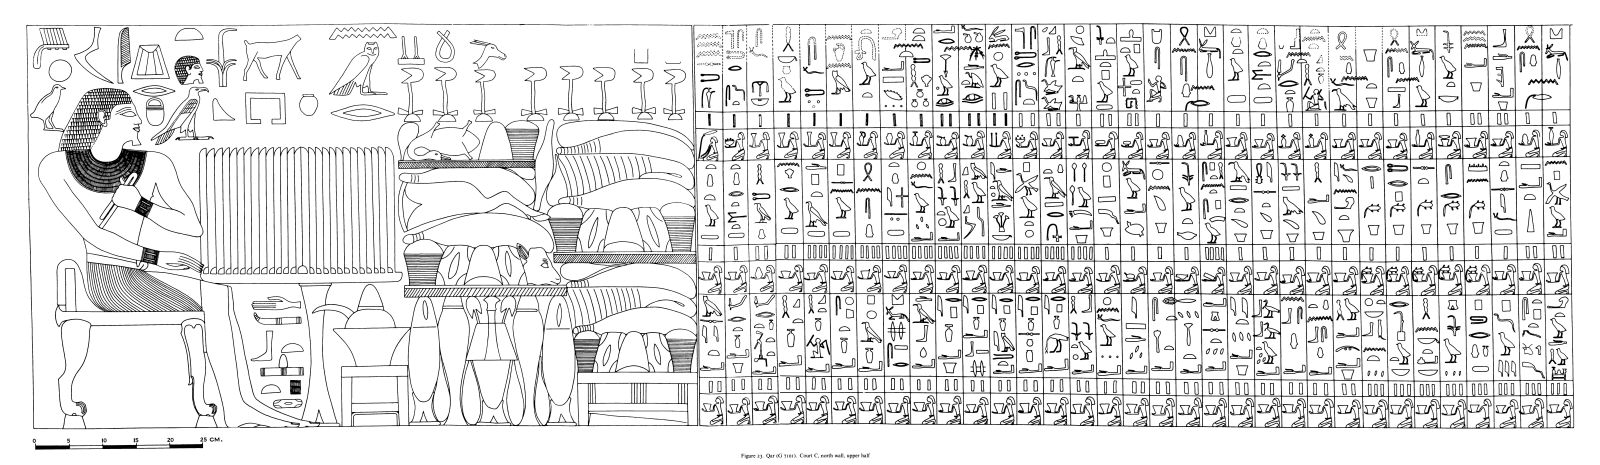 Drawings: G 7102: relief from Court C, N wall